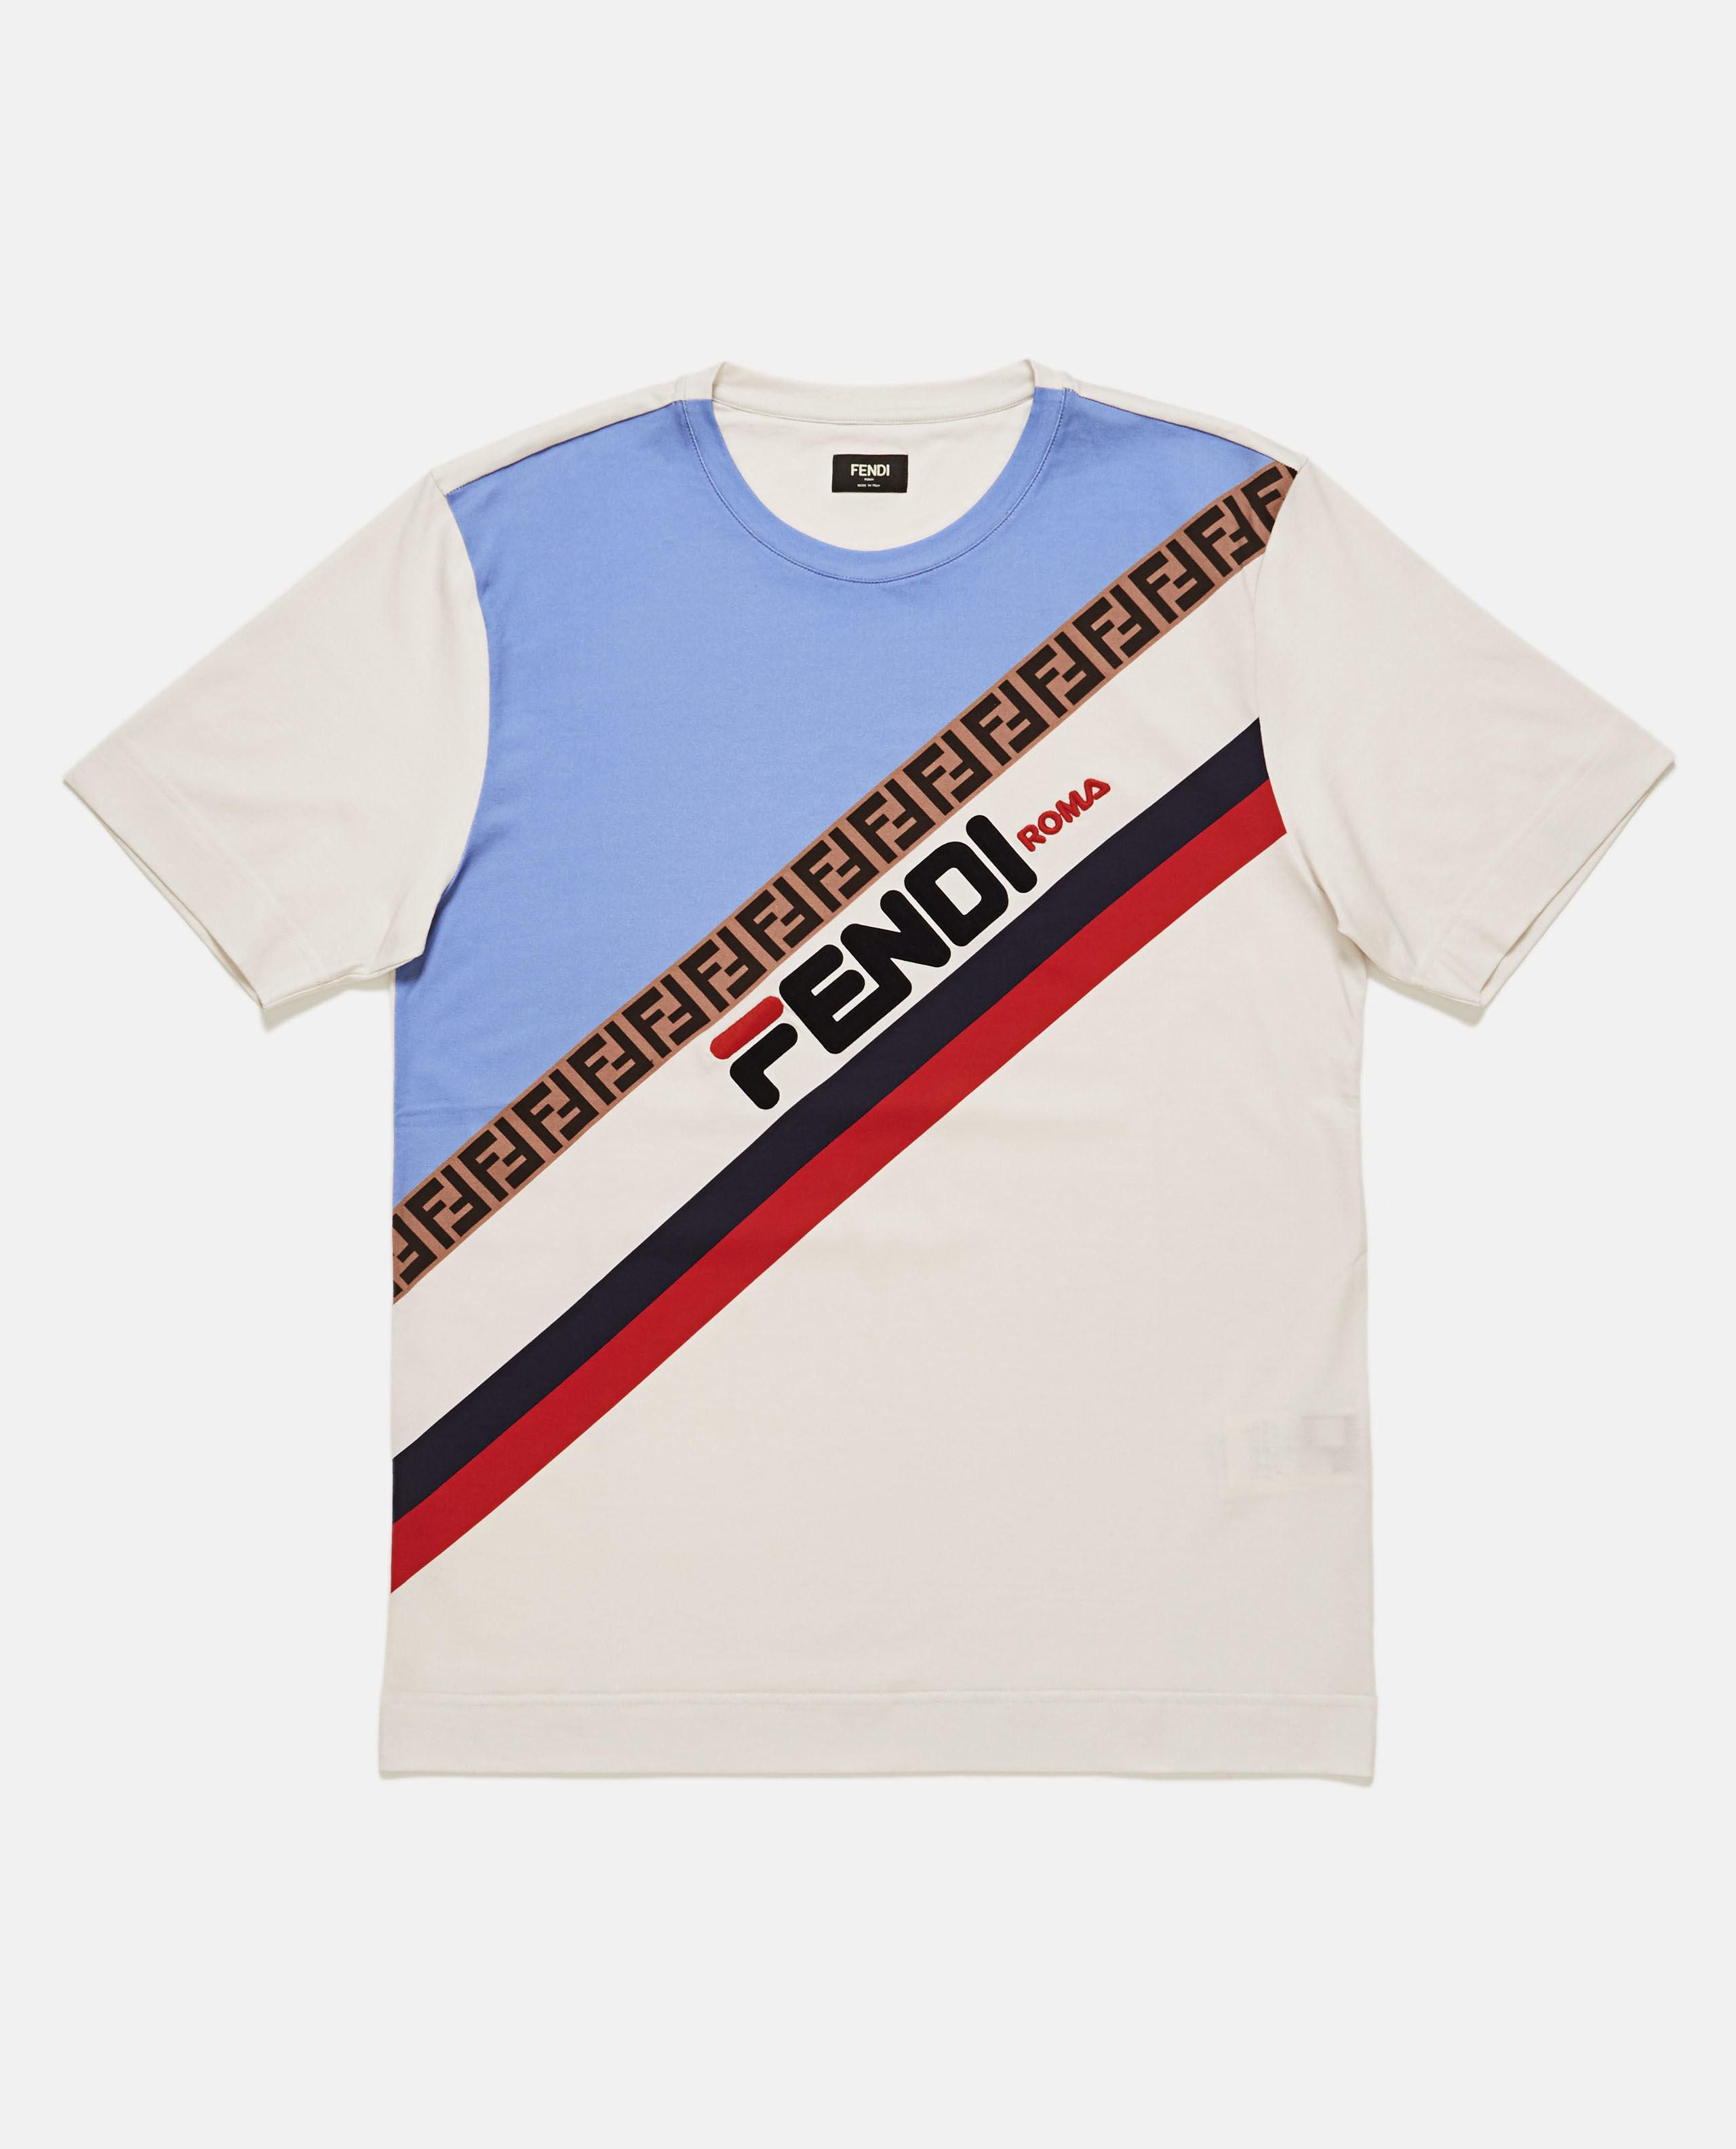 ff0f9bb5d50c Lyst - Fendi T-shirt With Mania Pattern in Natural for Men